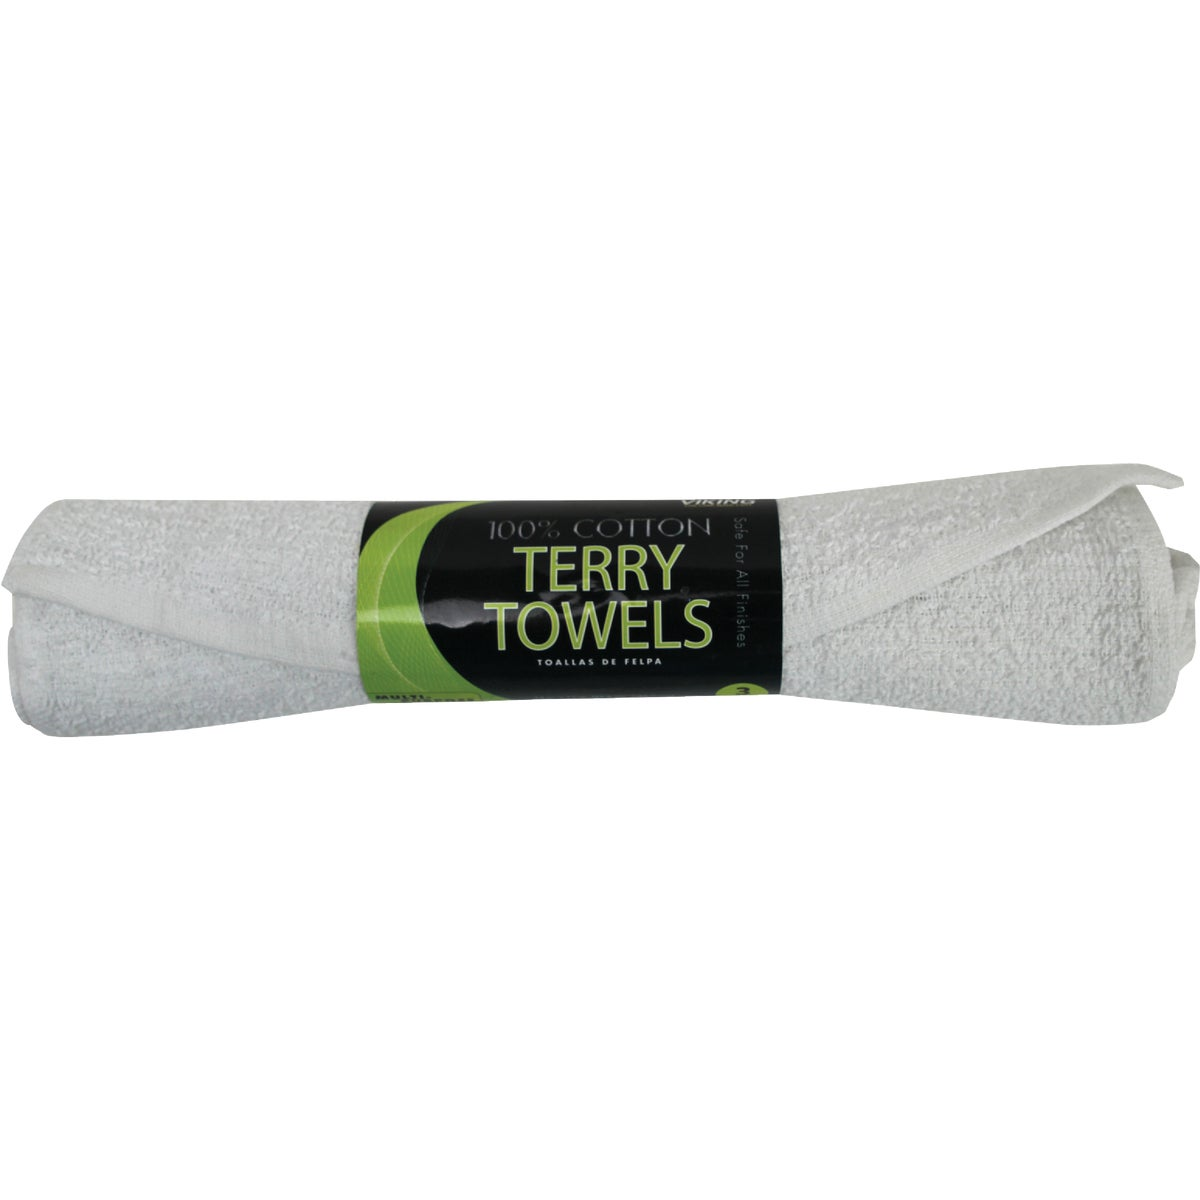 3PK WHITE TERRY TOWELS